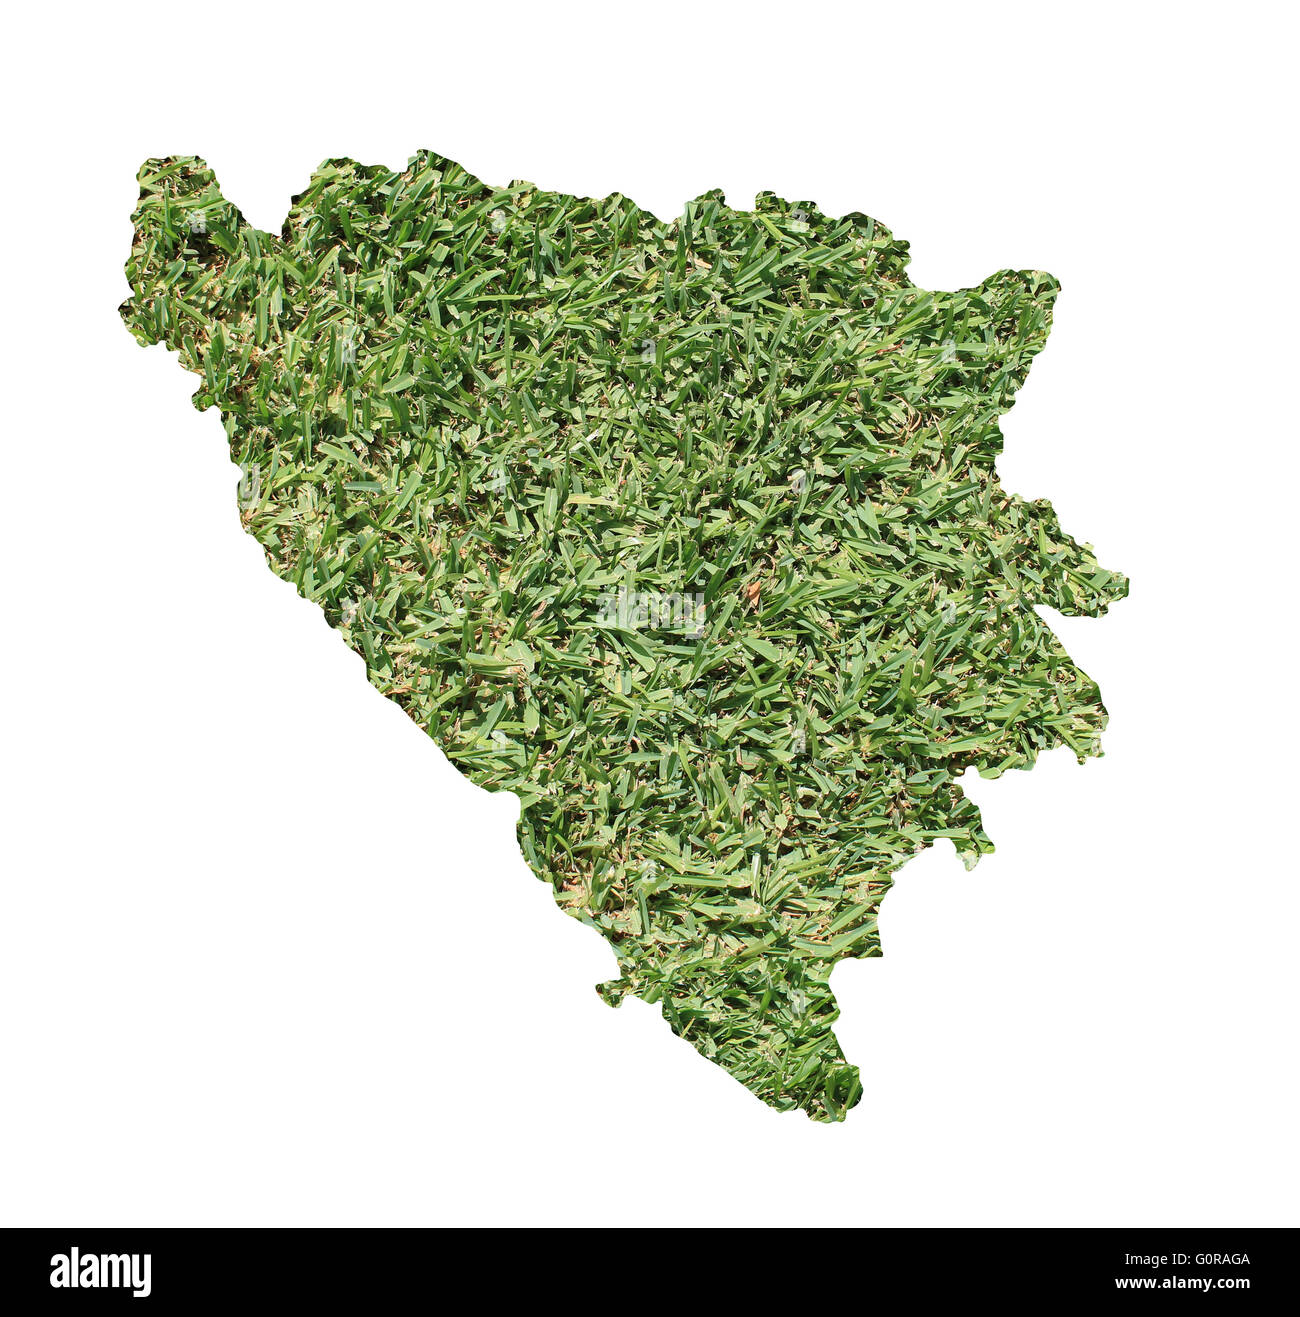 Map of Bosnia and Herzegovina filled with green grass, environmental and ecological concept. - Stock Image